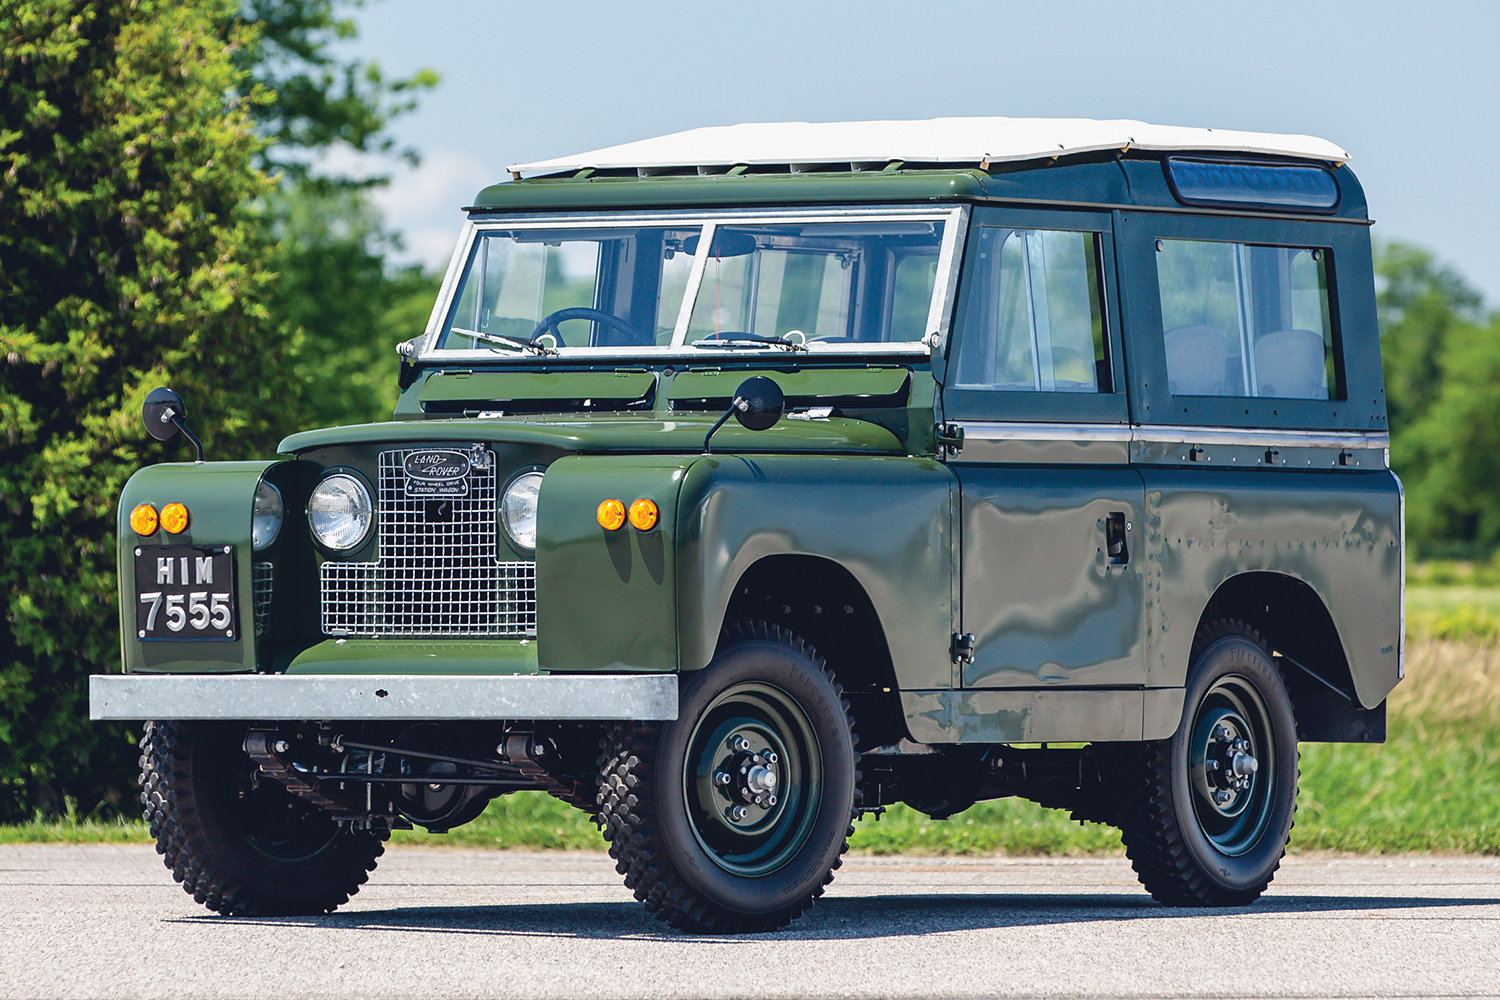 The Dalai Lama's Land Rover Series IIA Is Up for Auction